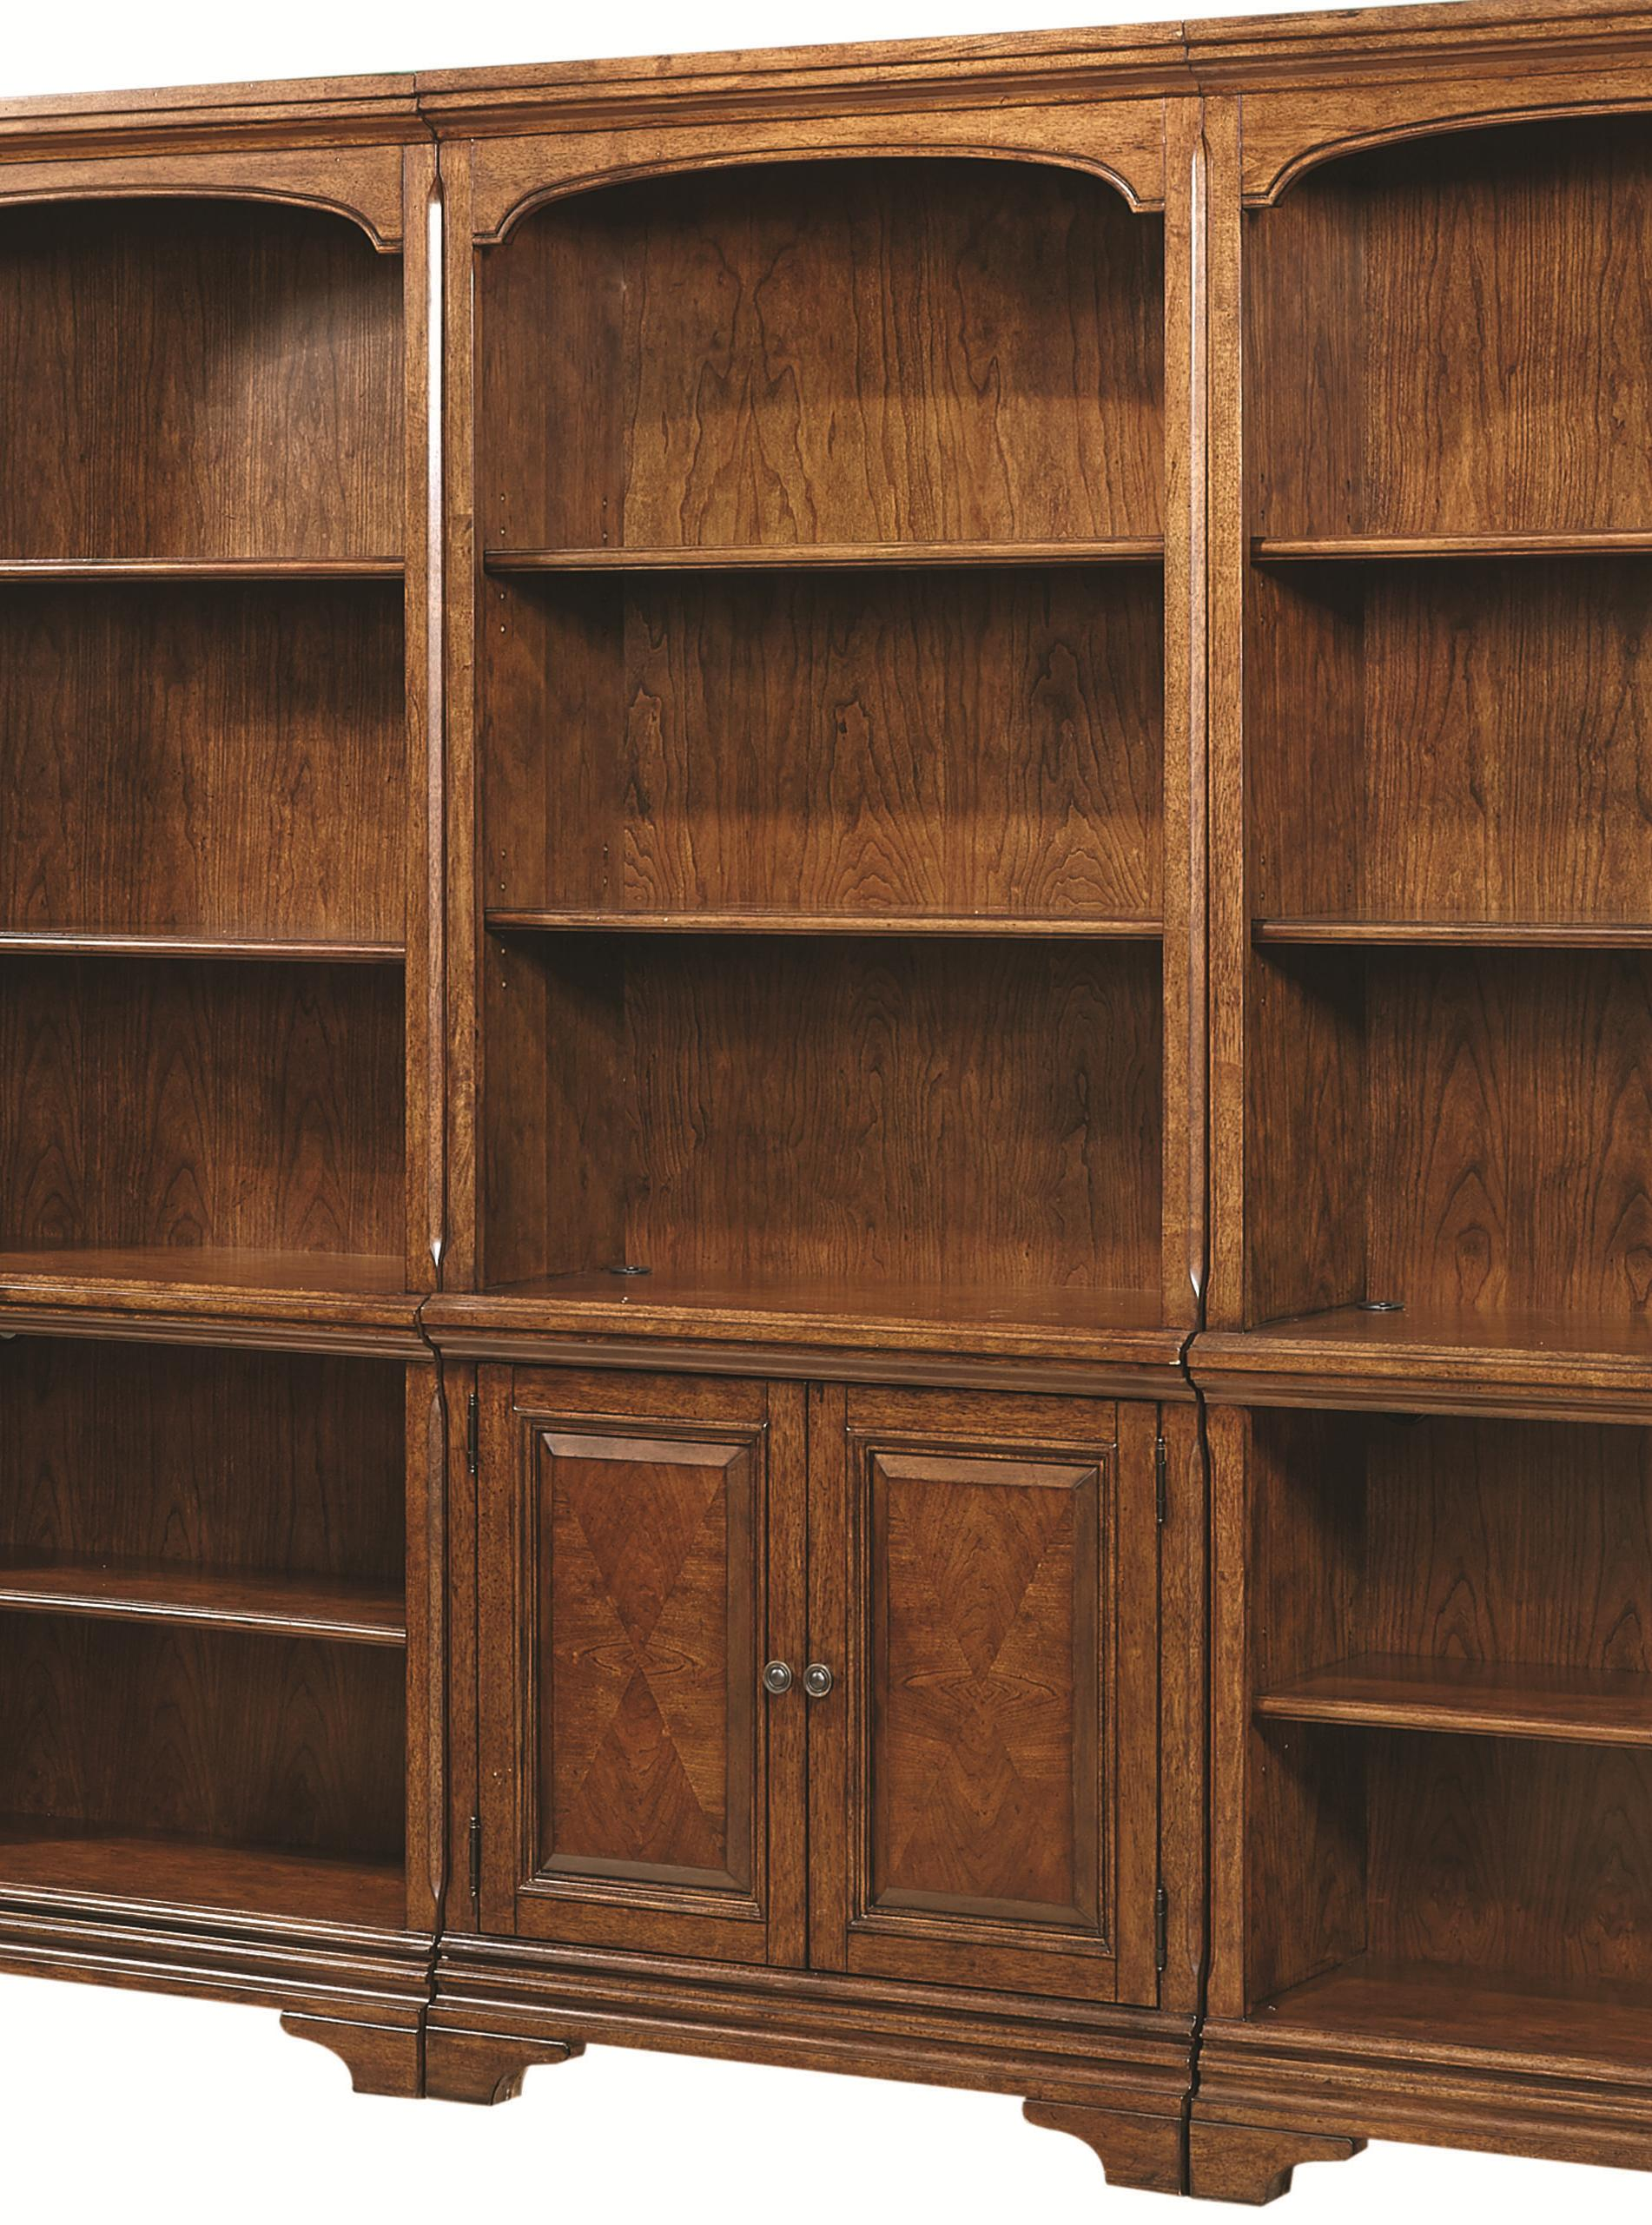 Aspenhome Hawthorne Door Bookcase - Item Number: I26-332